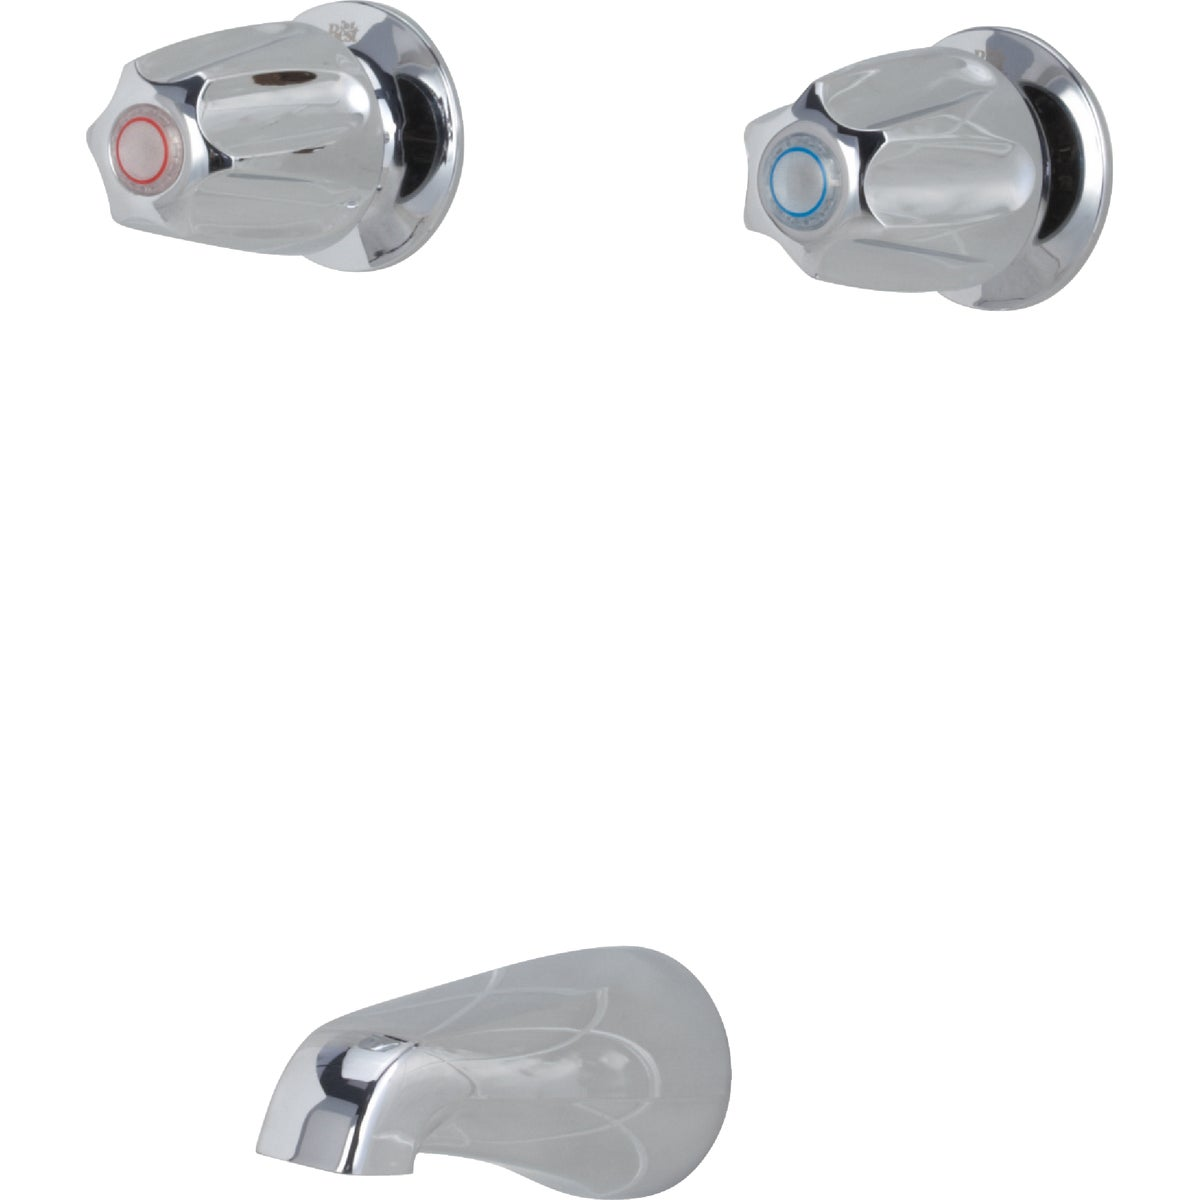 CHR TUB FAUCET - F20K1304CP-JPA1 by Globe Union